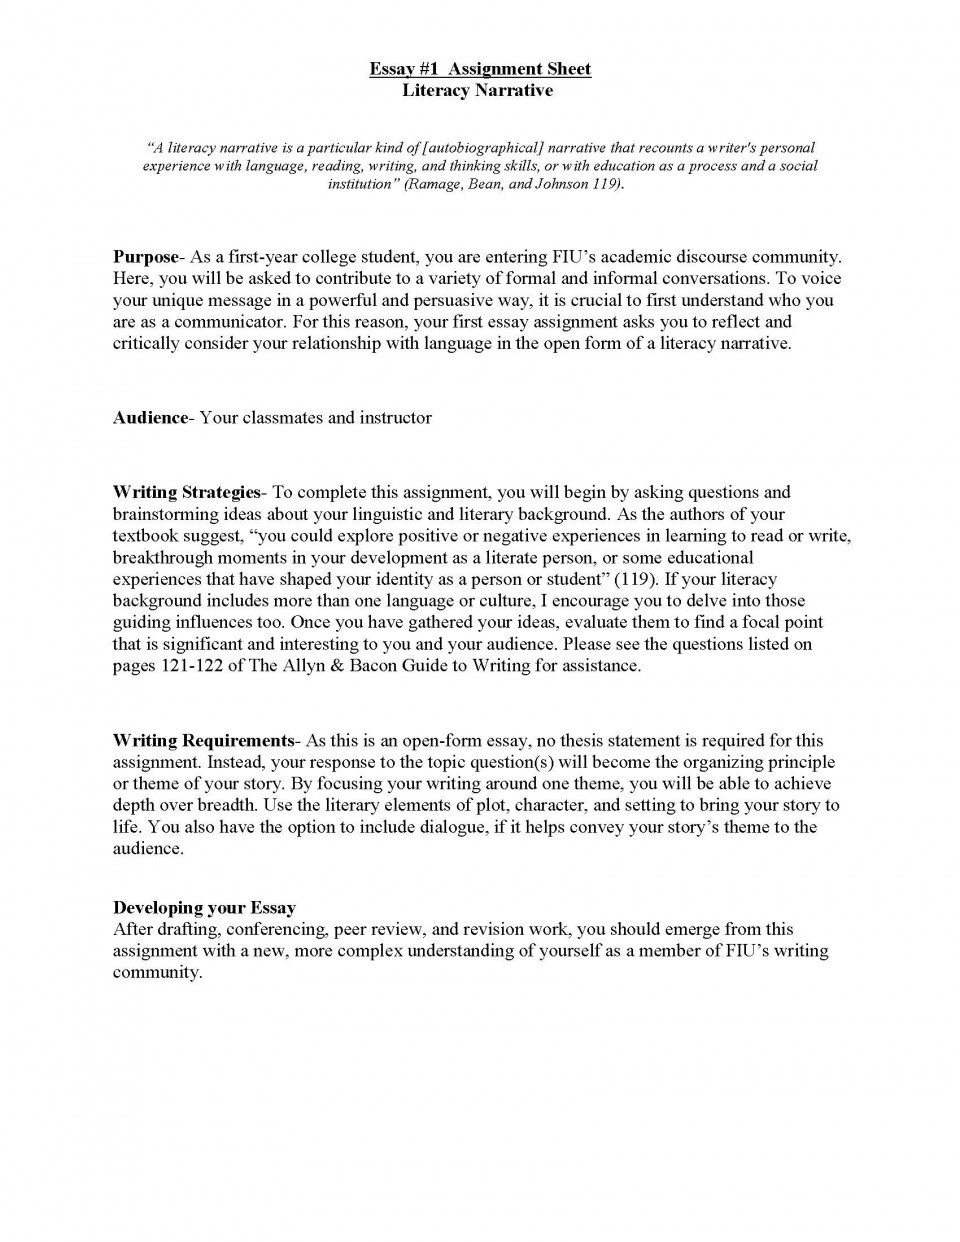 021 Essay Example Literacy Narrative Unit Assignment Spring 2012 Page 1 Essays Top Examples Free Samples Of Personal For Colleges 960